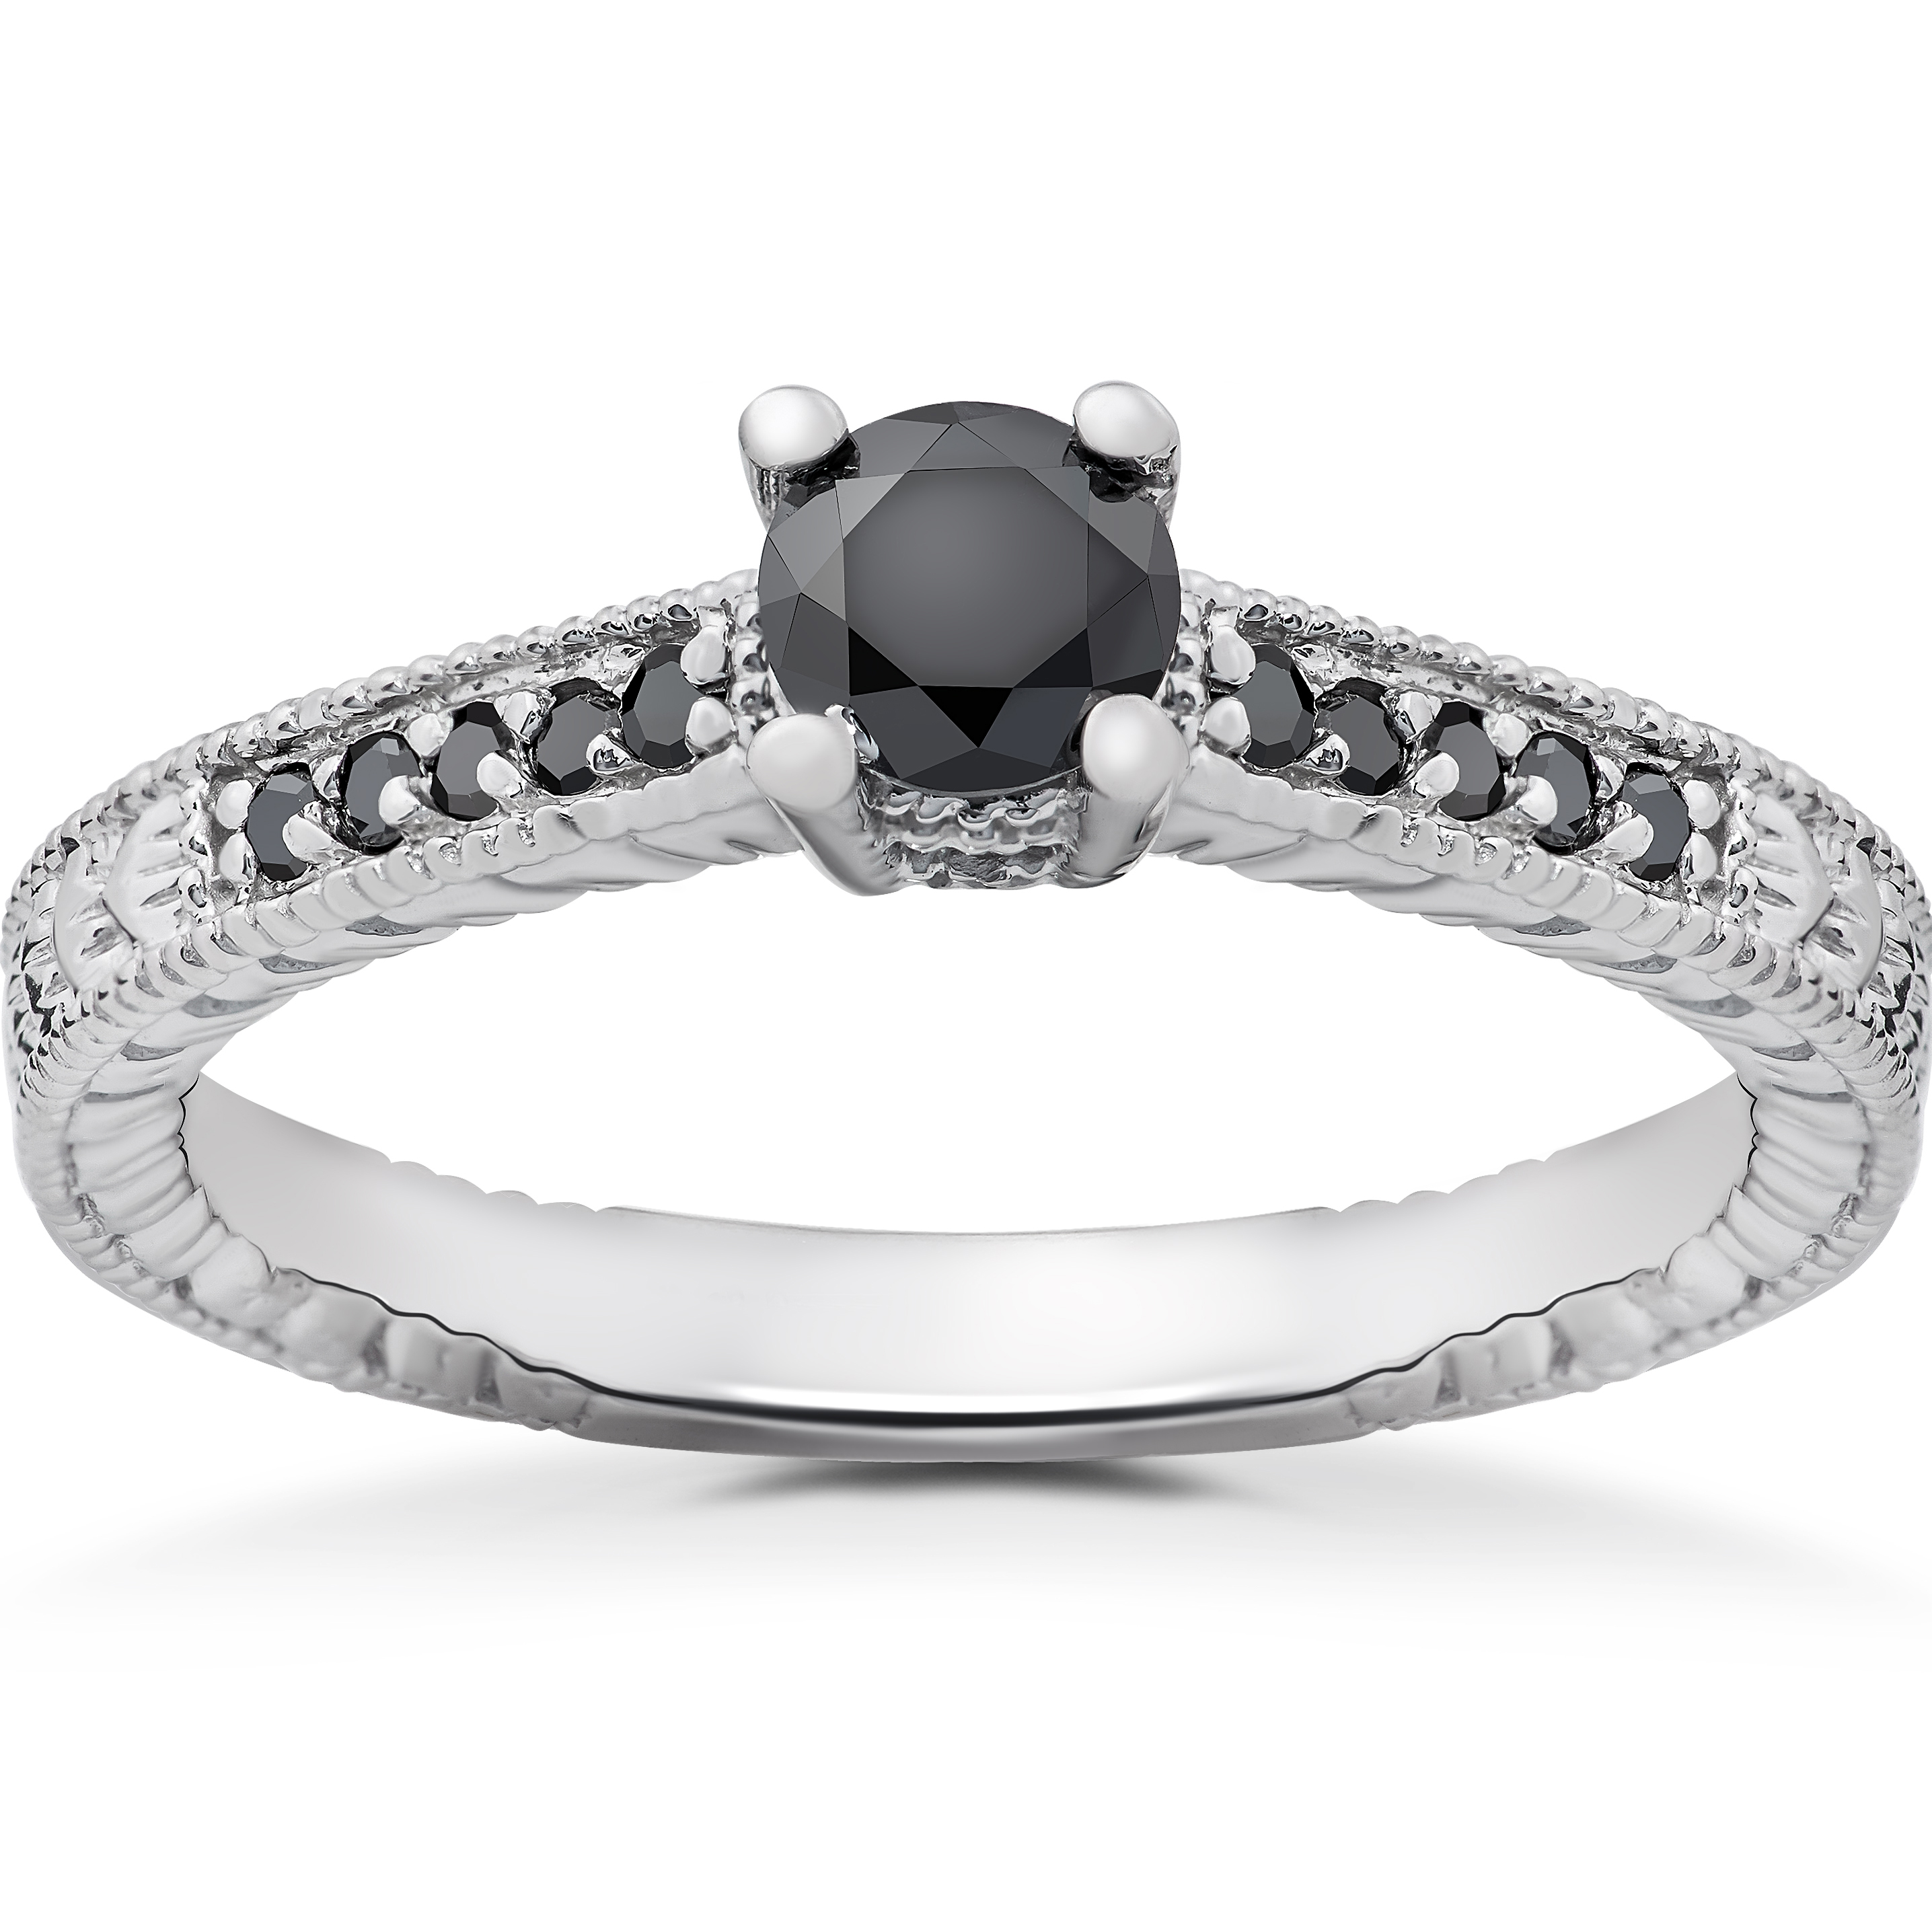 1 2 ct black diamond vintage engagement ring 14k white for 1 ct wedding ring